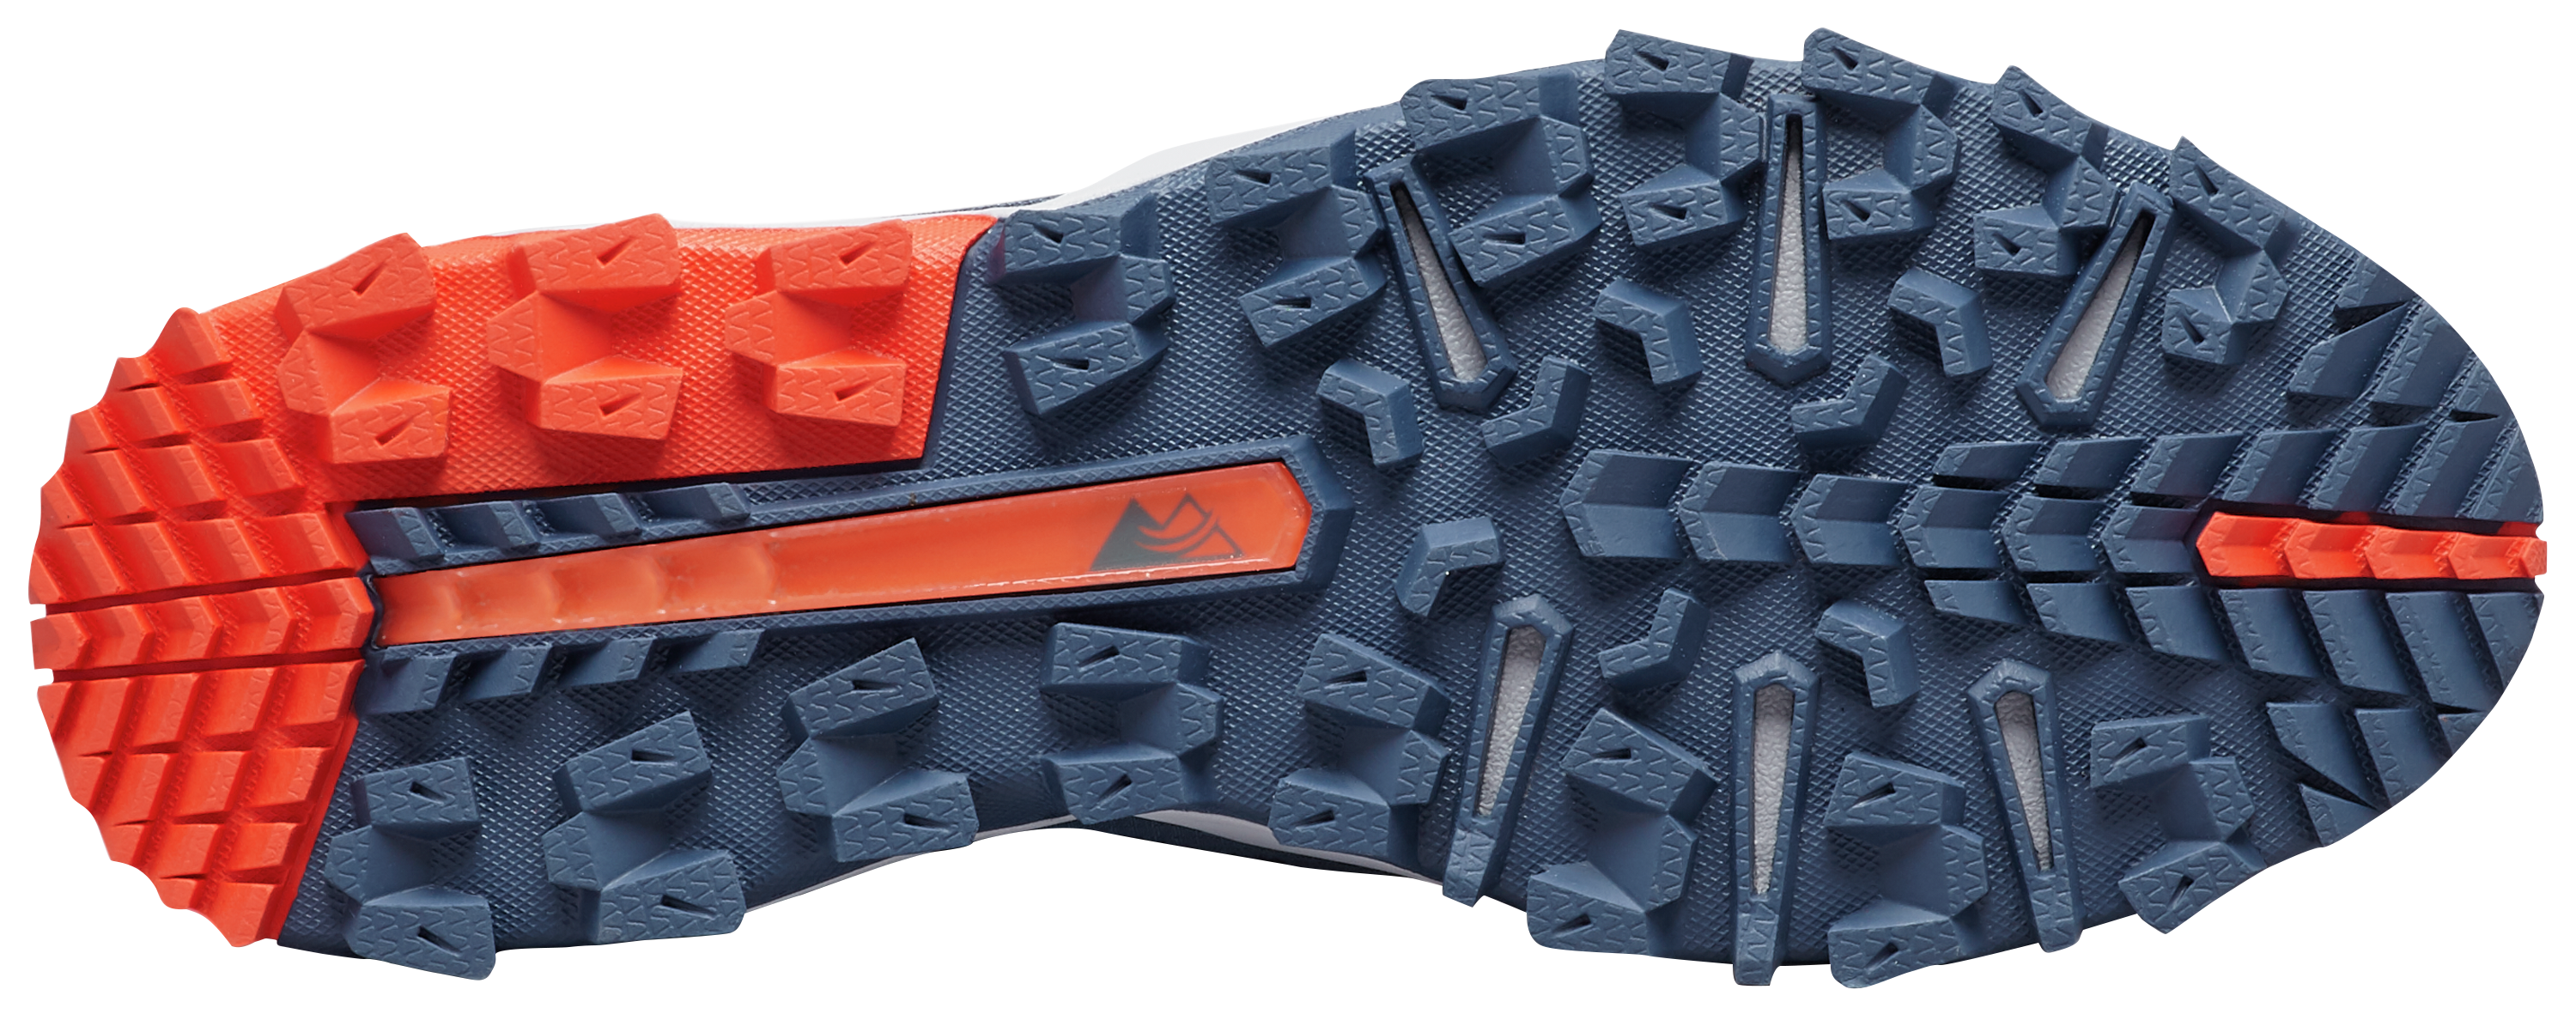 Close-up of a Columbia Montrail shoe undersole.